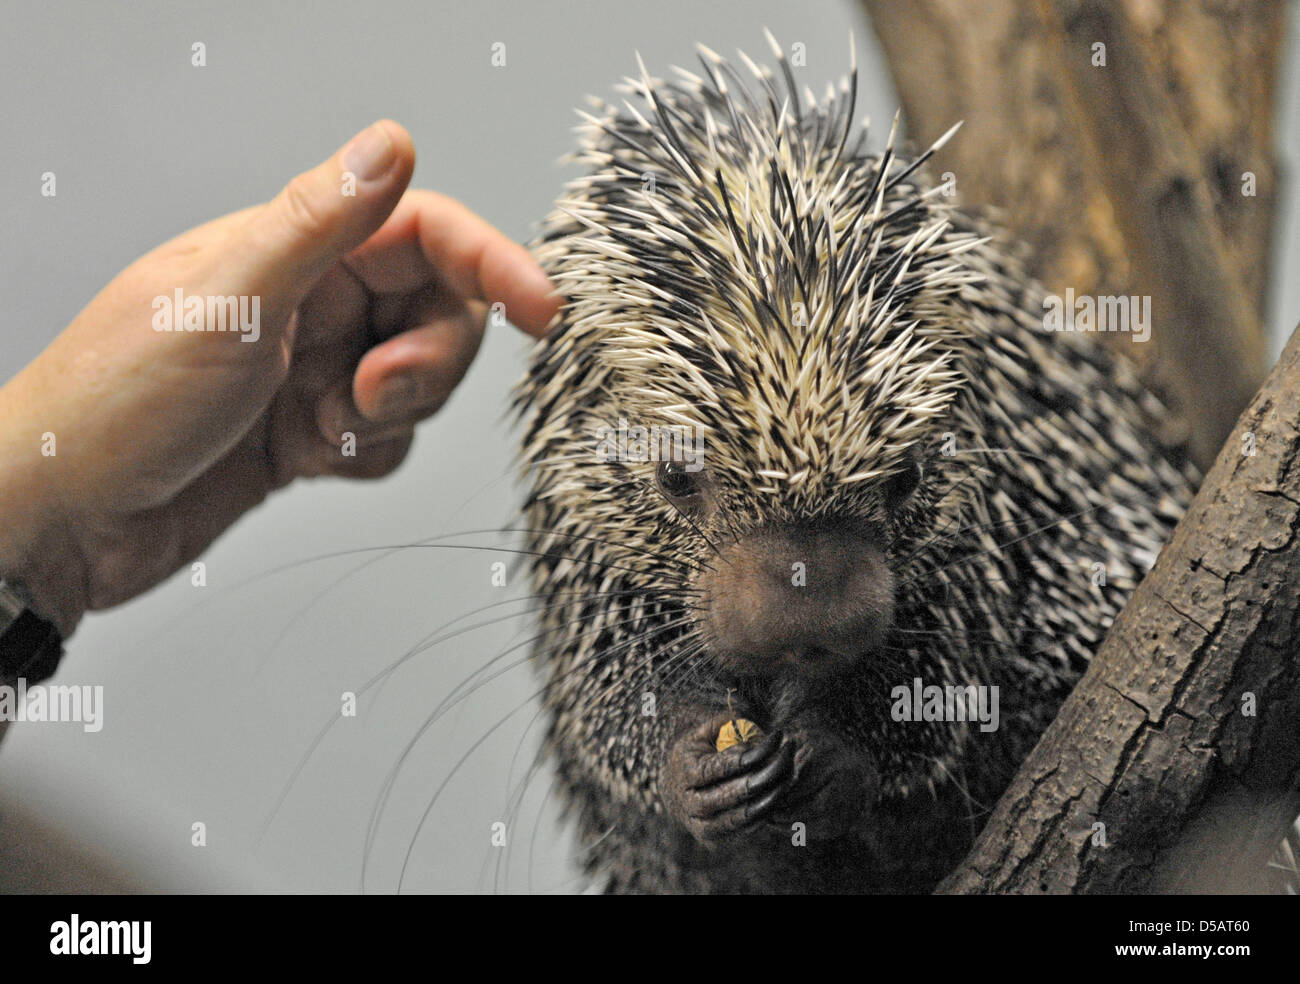 This female Prehensile-tailed porcupine, or coendous, enjoys being pettet by her keeper at the Zoo in Frankurt/Main, - Stock Image